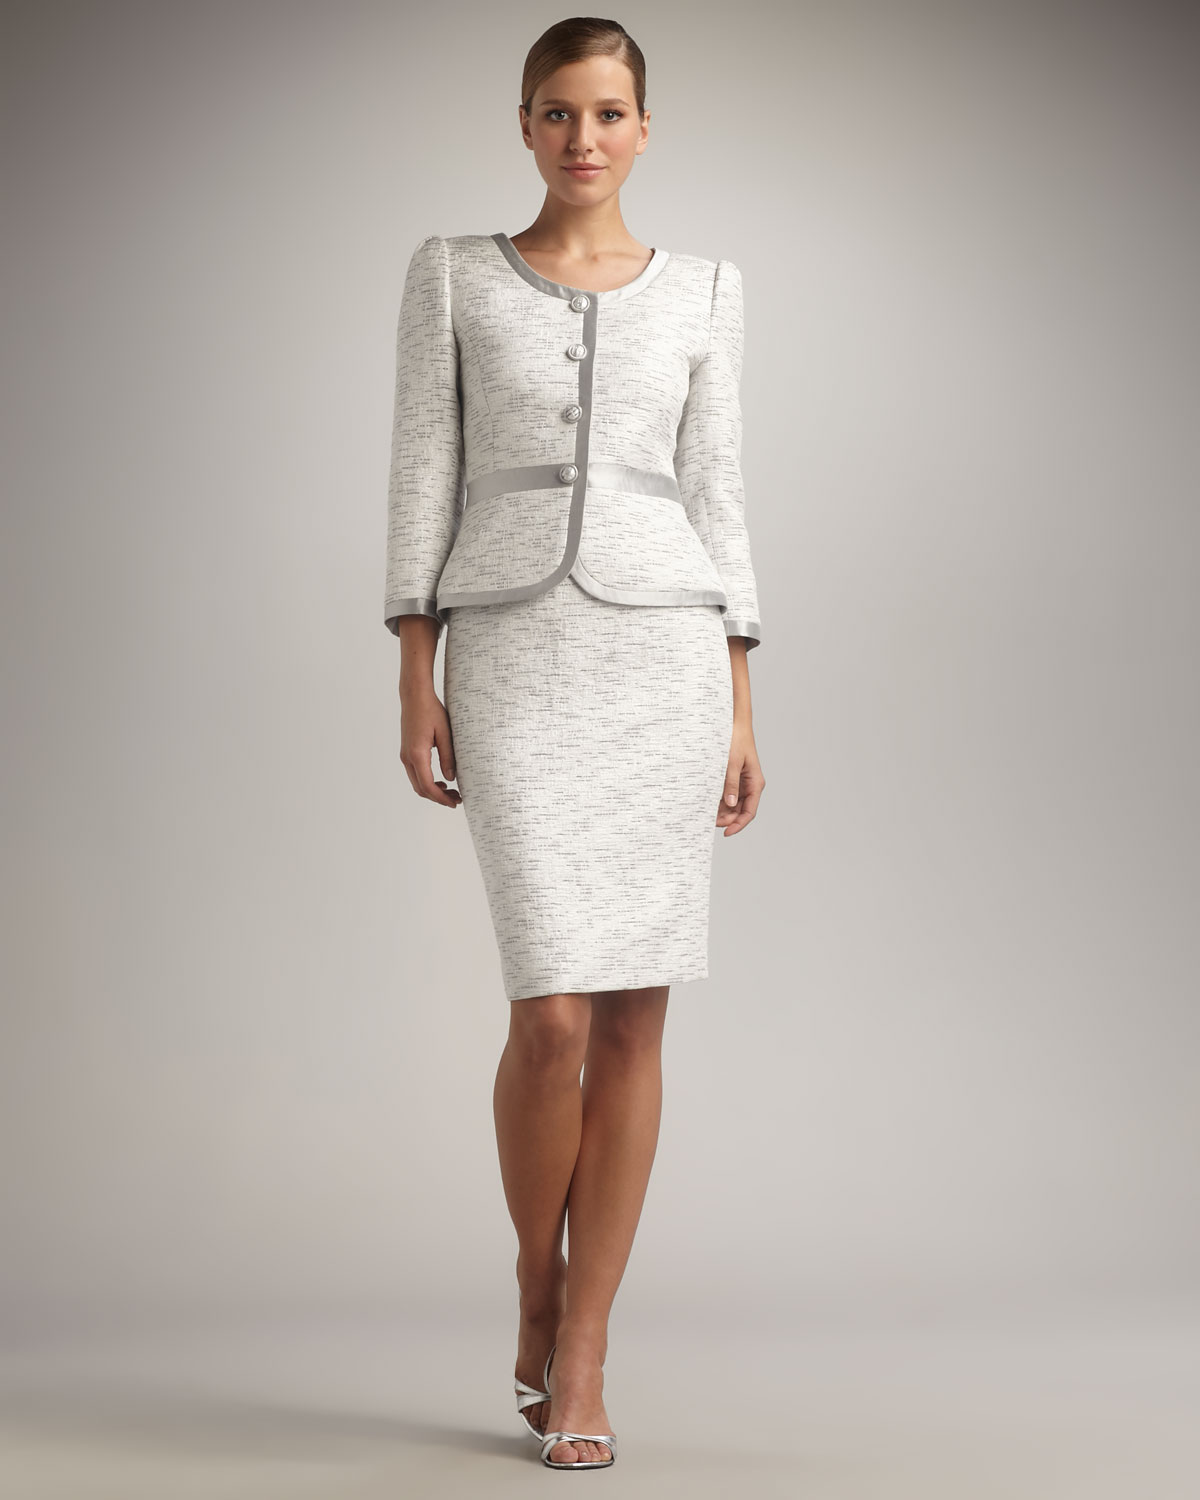 Lyst - Tahari Silver-trimmed Skirtsuit in White